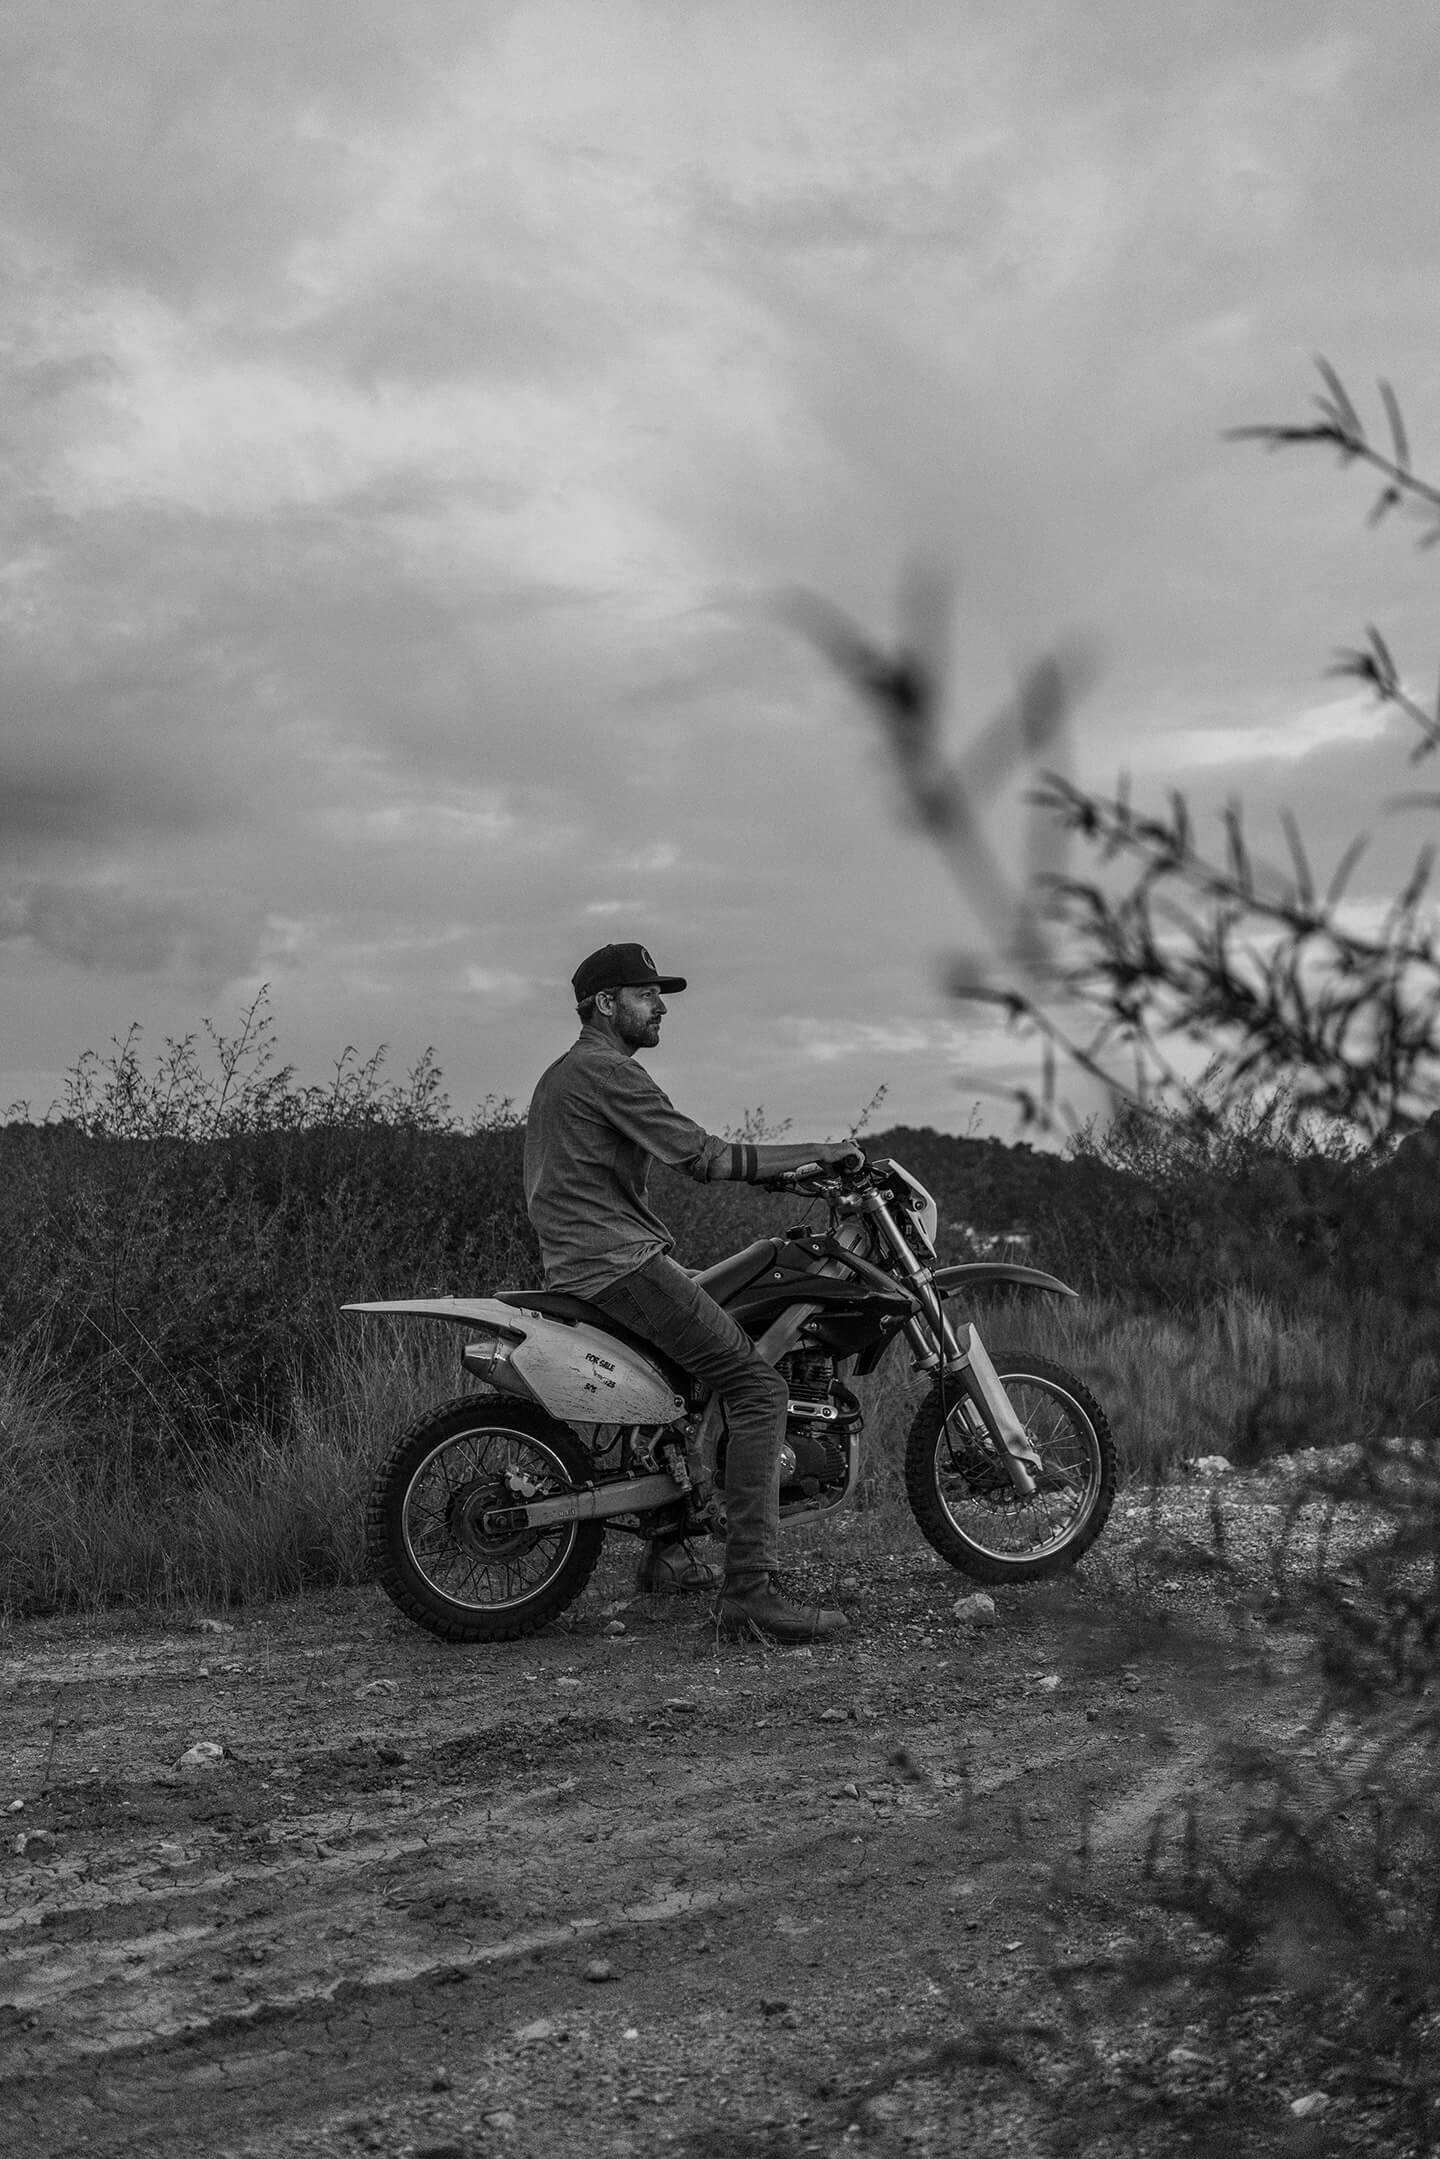 Jon Rose, Founder of Waves for Water, on a motorbike